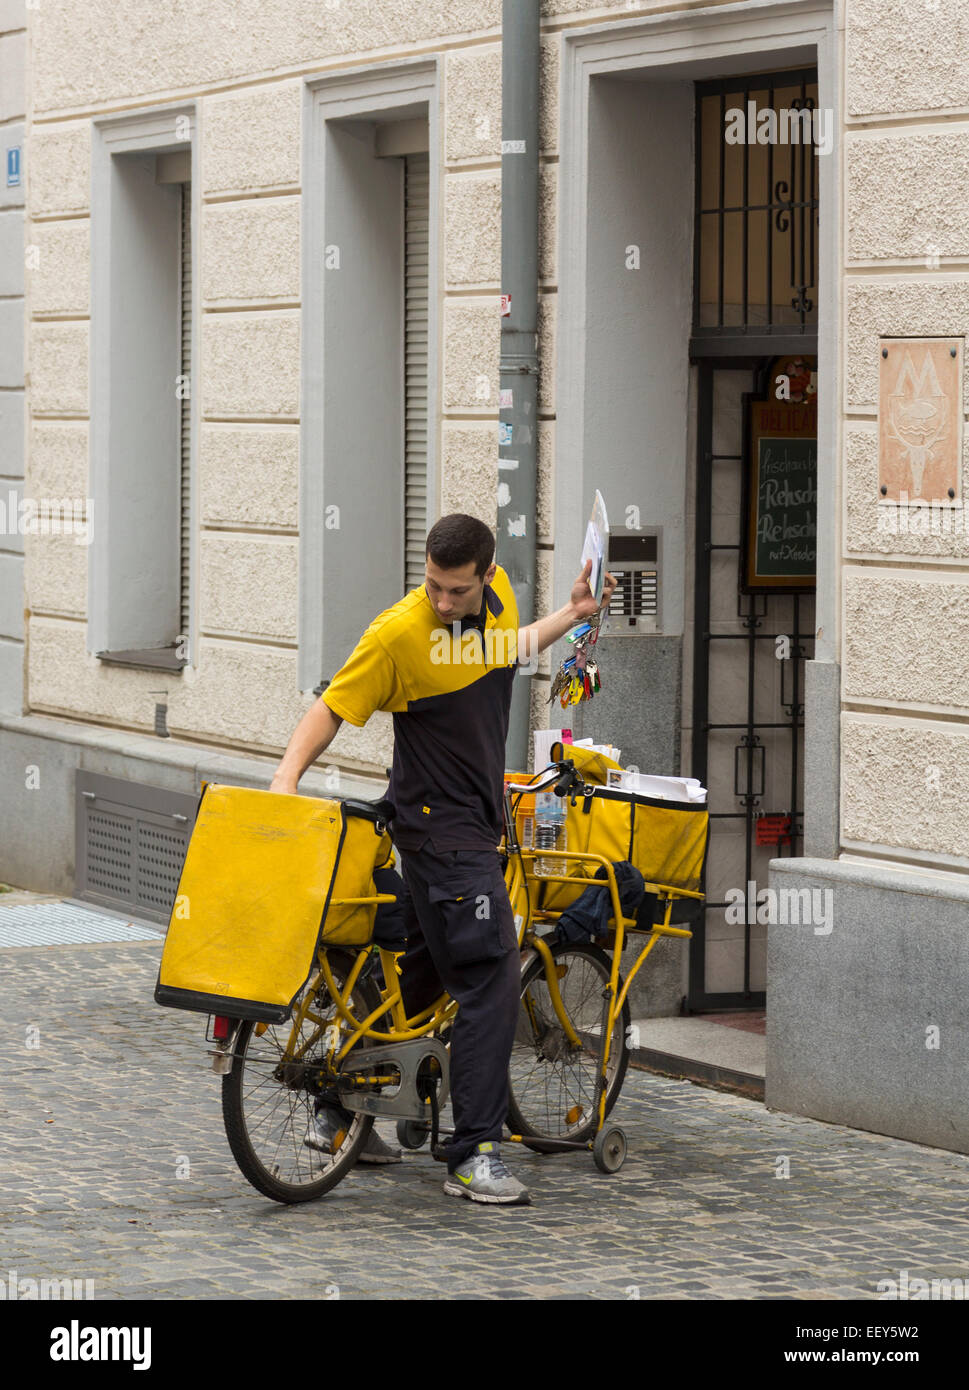 Postman delivering letters from bicycle in Regensburg, Bavaria, Germany Stock Photo